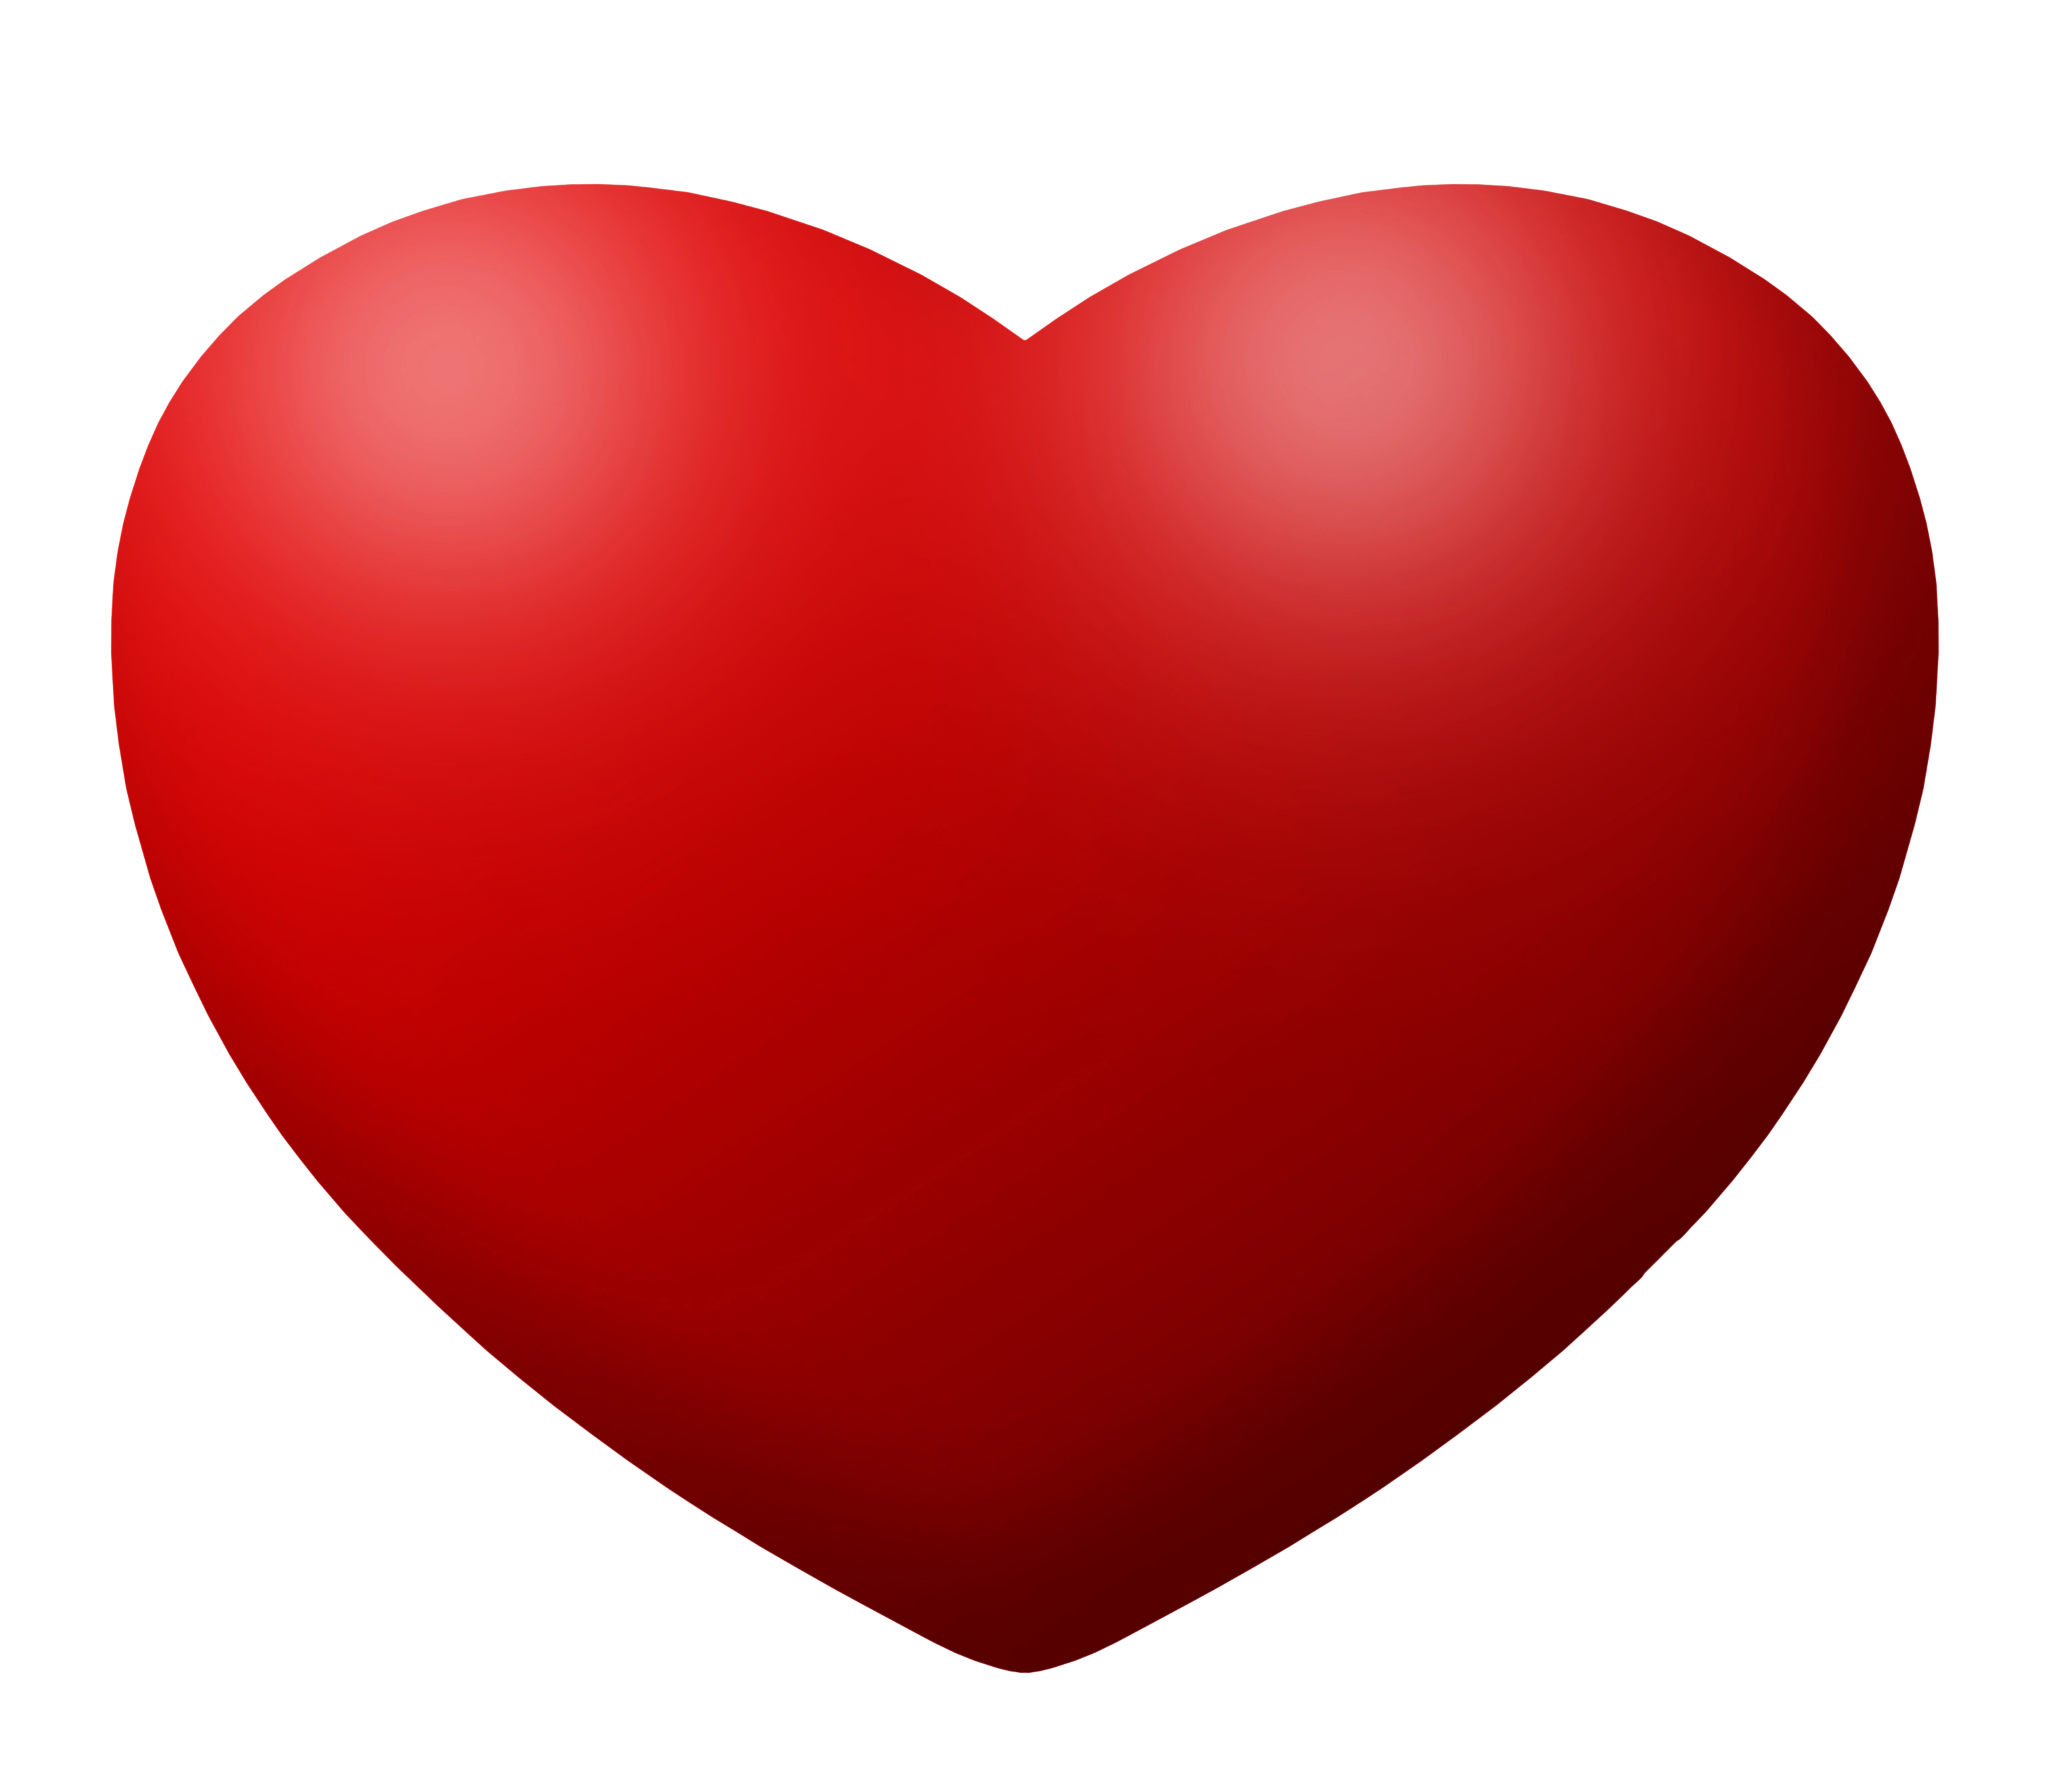 svg free Png free images download. Teaching is a work of heart clipart